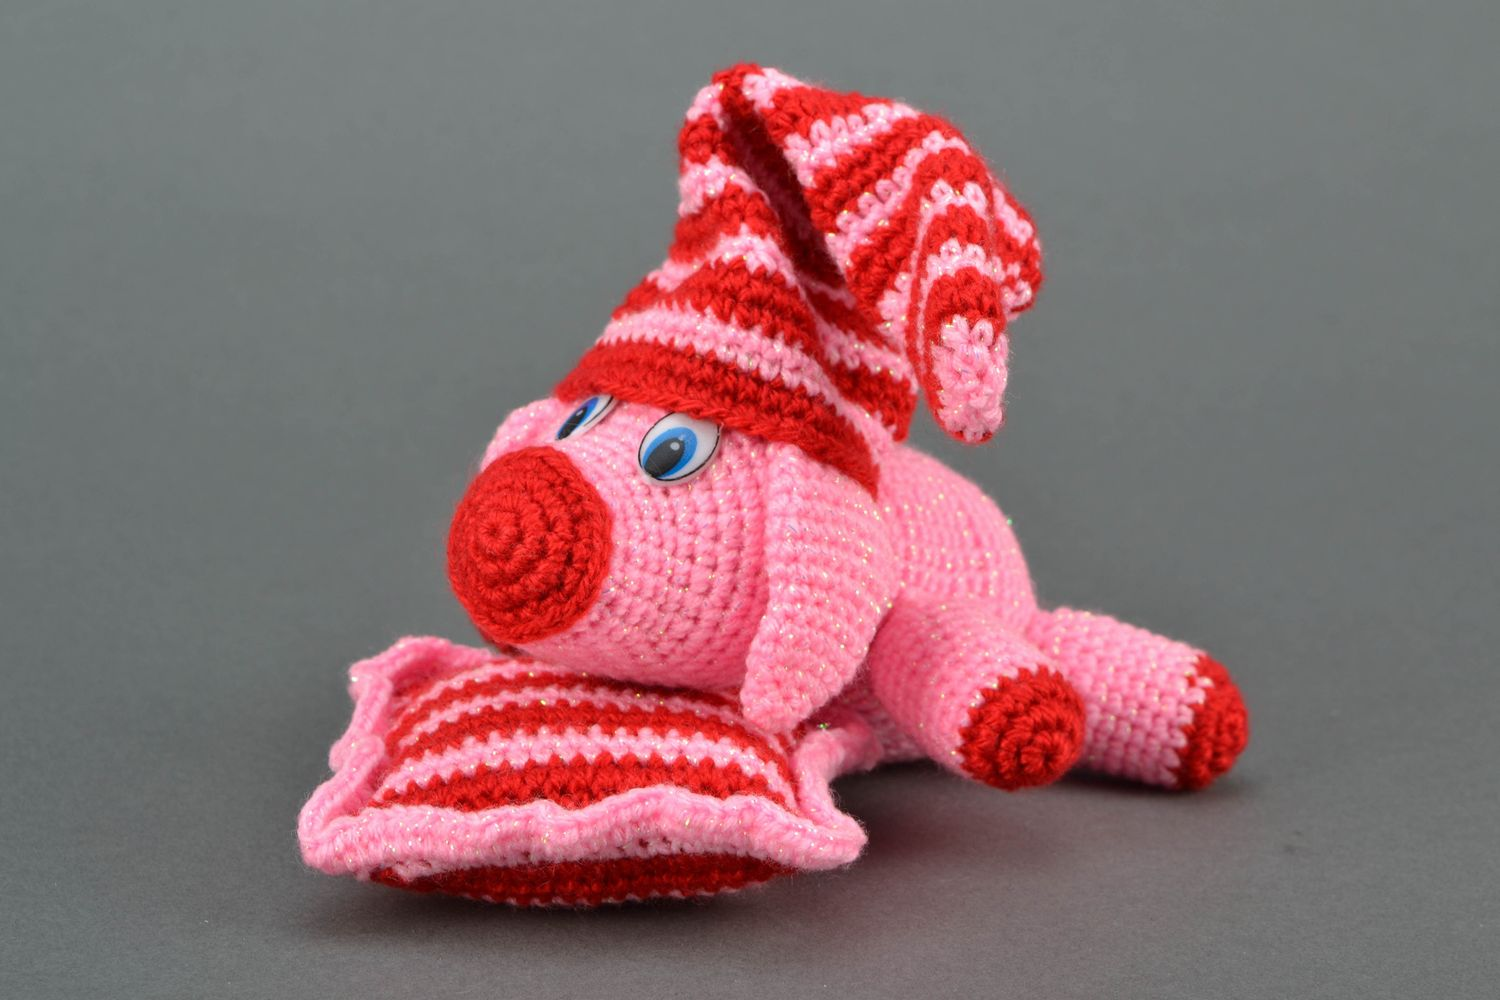 Soft crochet toy Pink Pig on Pillow photo 1